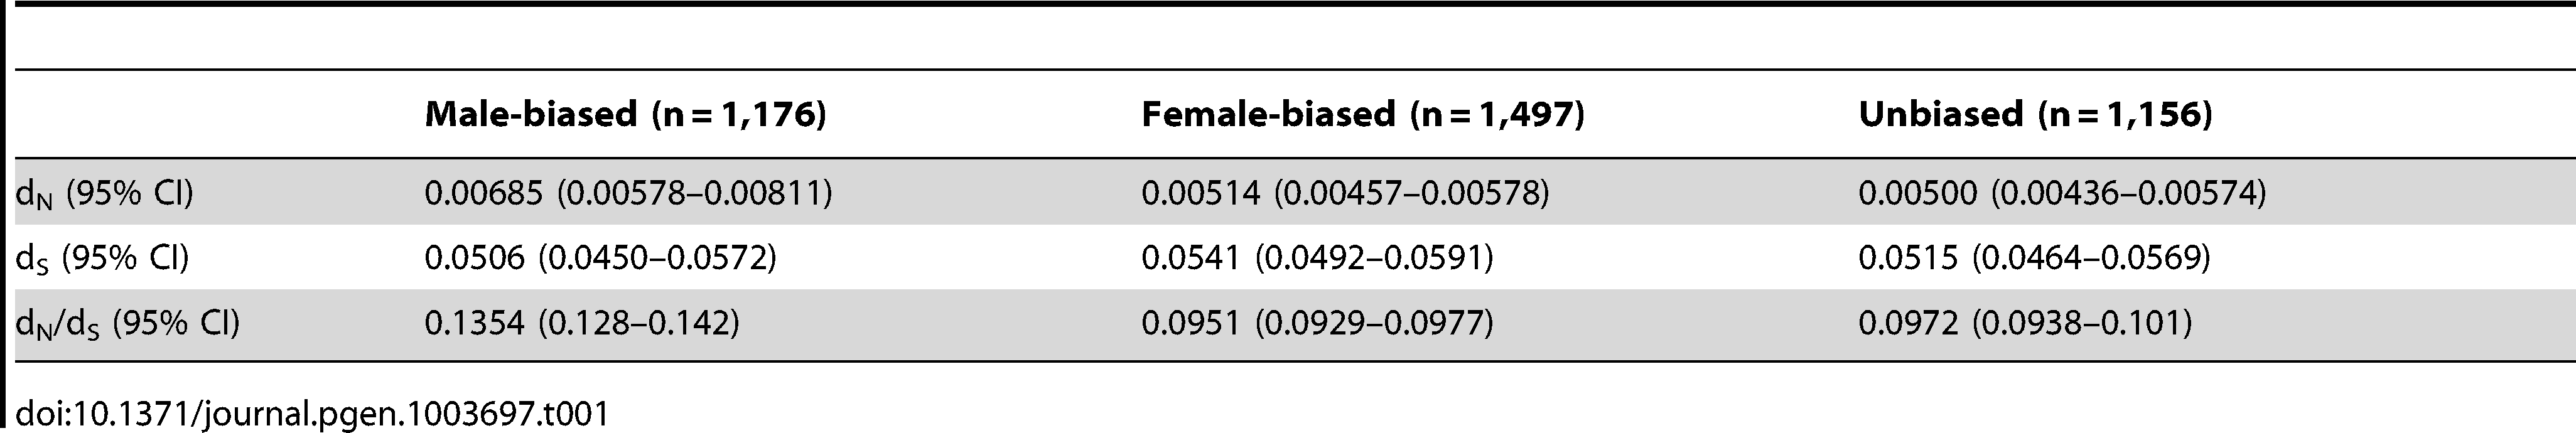 Rates of non-synonymous (d<sub>N</sub>) and synonymous (d<sub>S</sub>) substitution for autosomal sex-biased and unbiased genes.